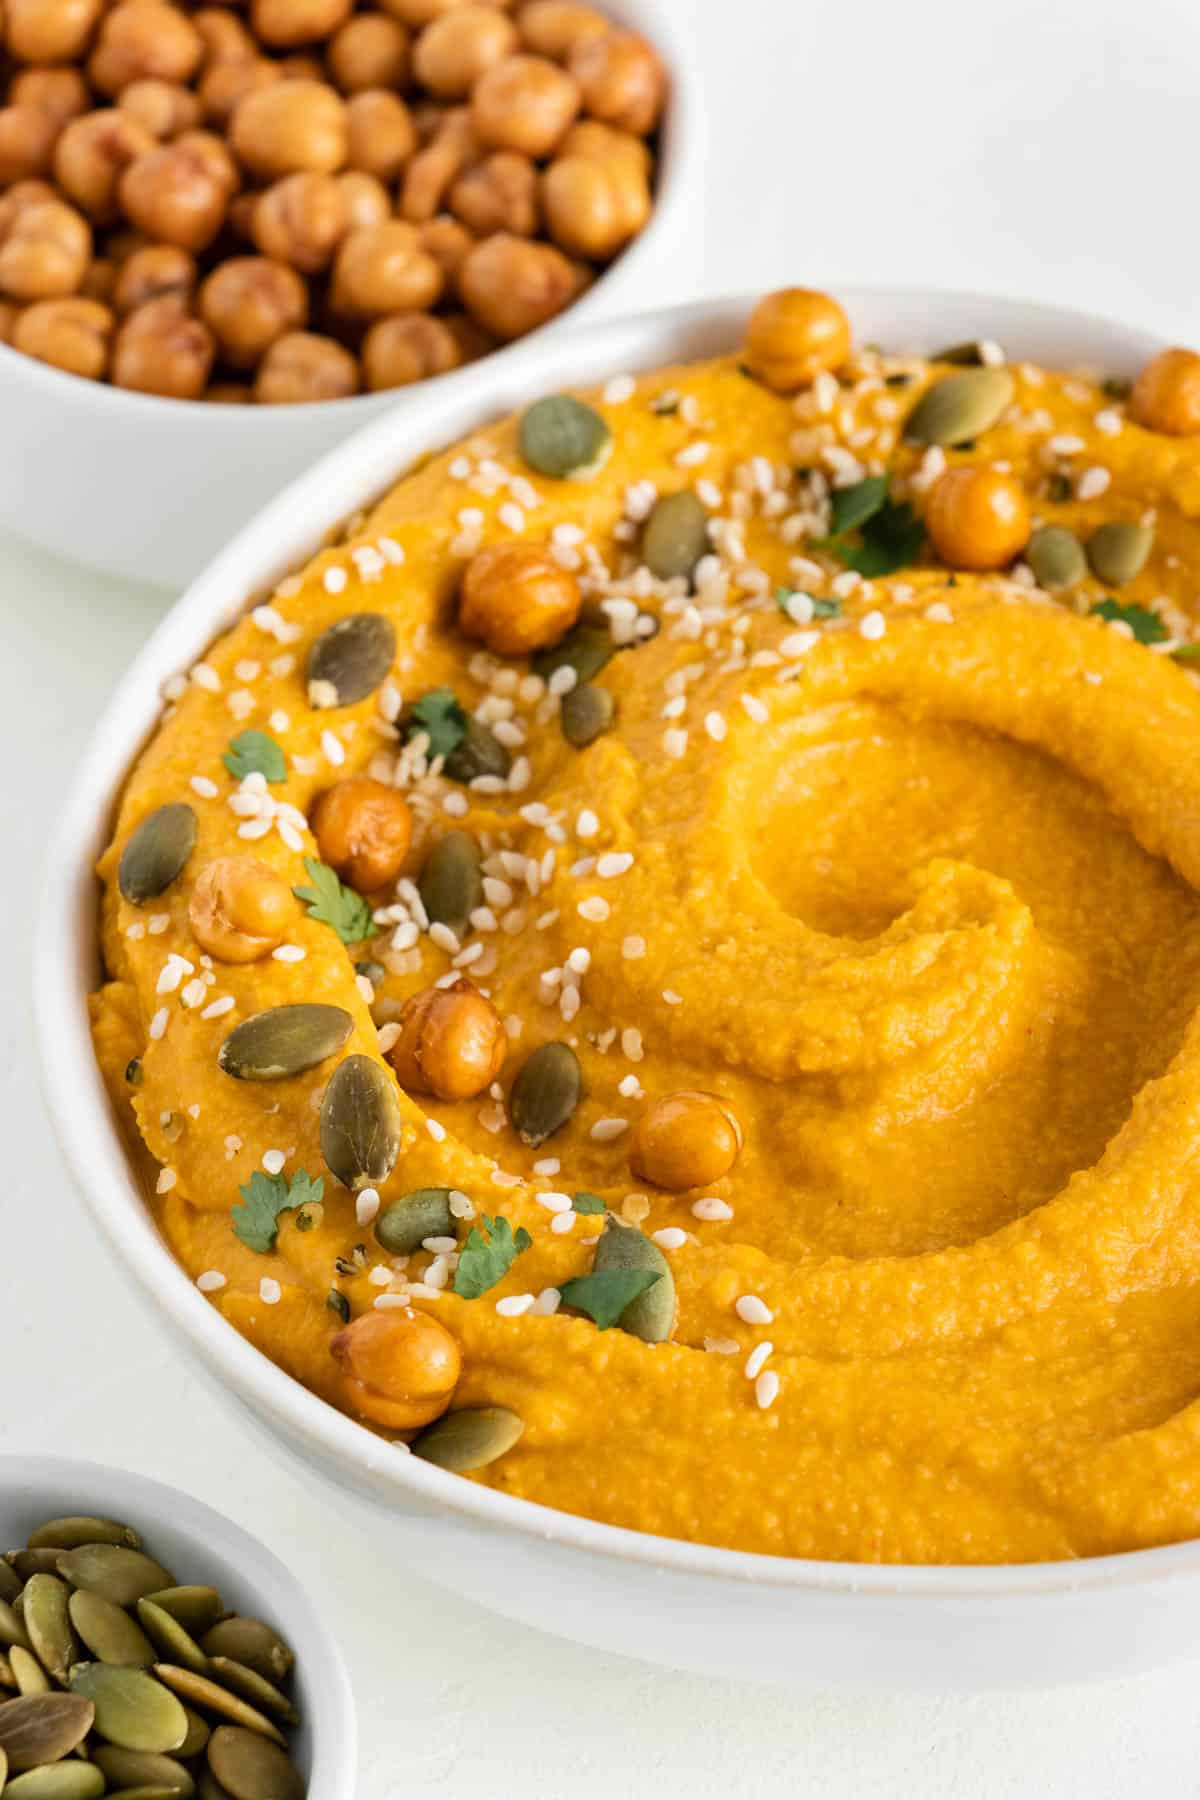 pumpkin hummus in a white bowl topped with chickpeas, pumpkin seeds, and sesame seeds